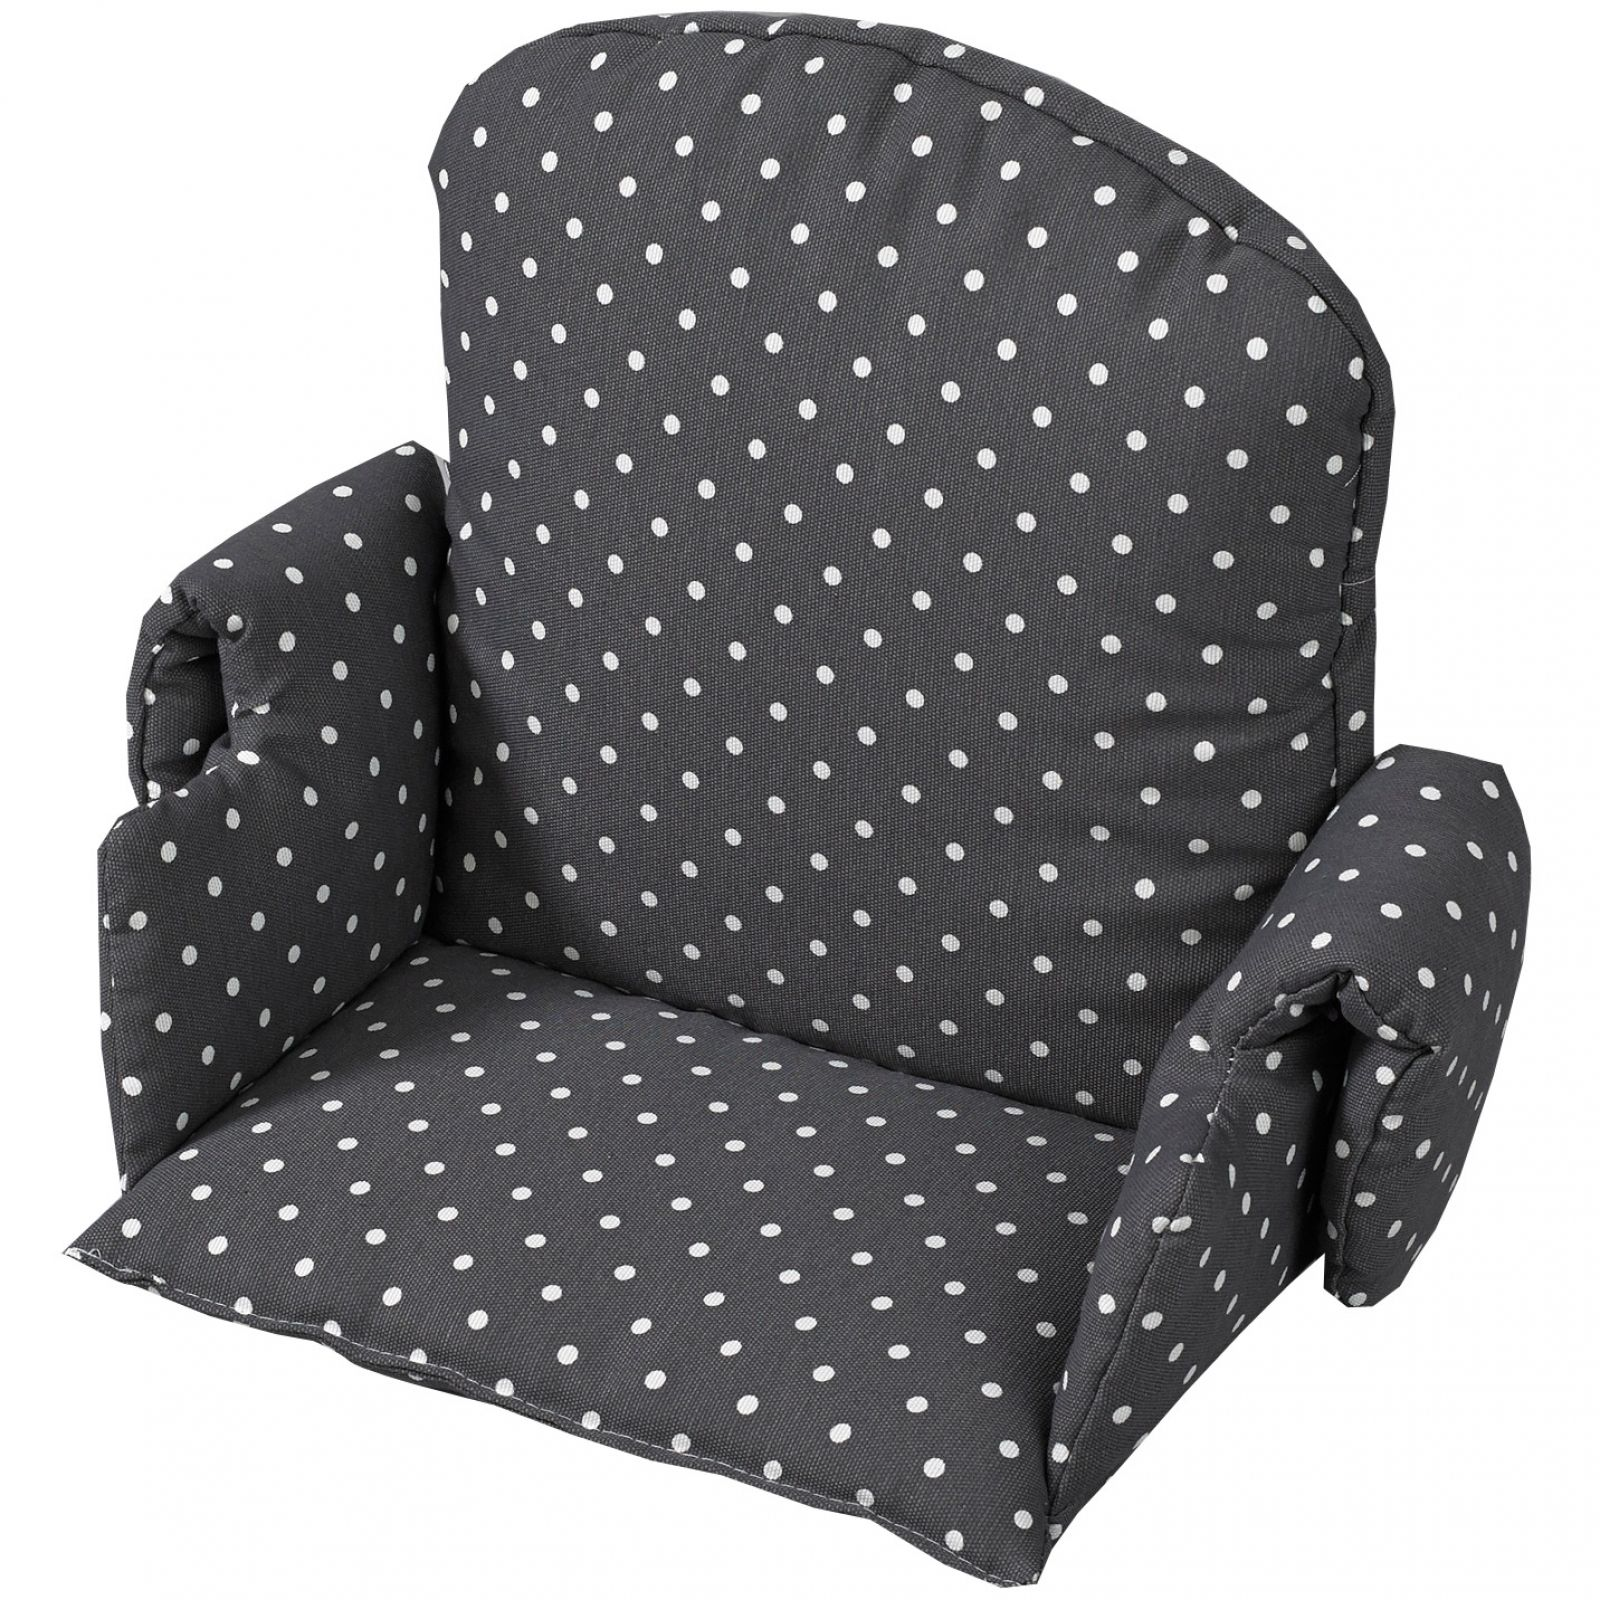 Coussin Dassise Tissus Pour Chaise Haute Gris Pois Geuther